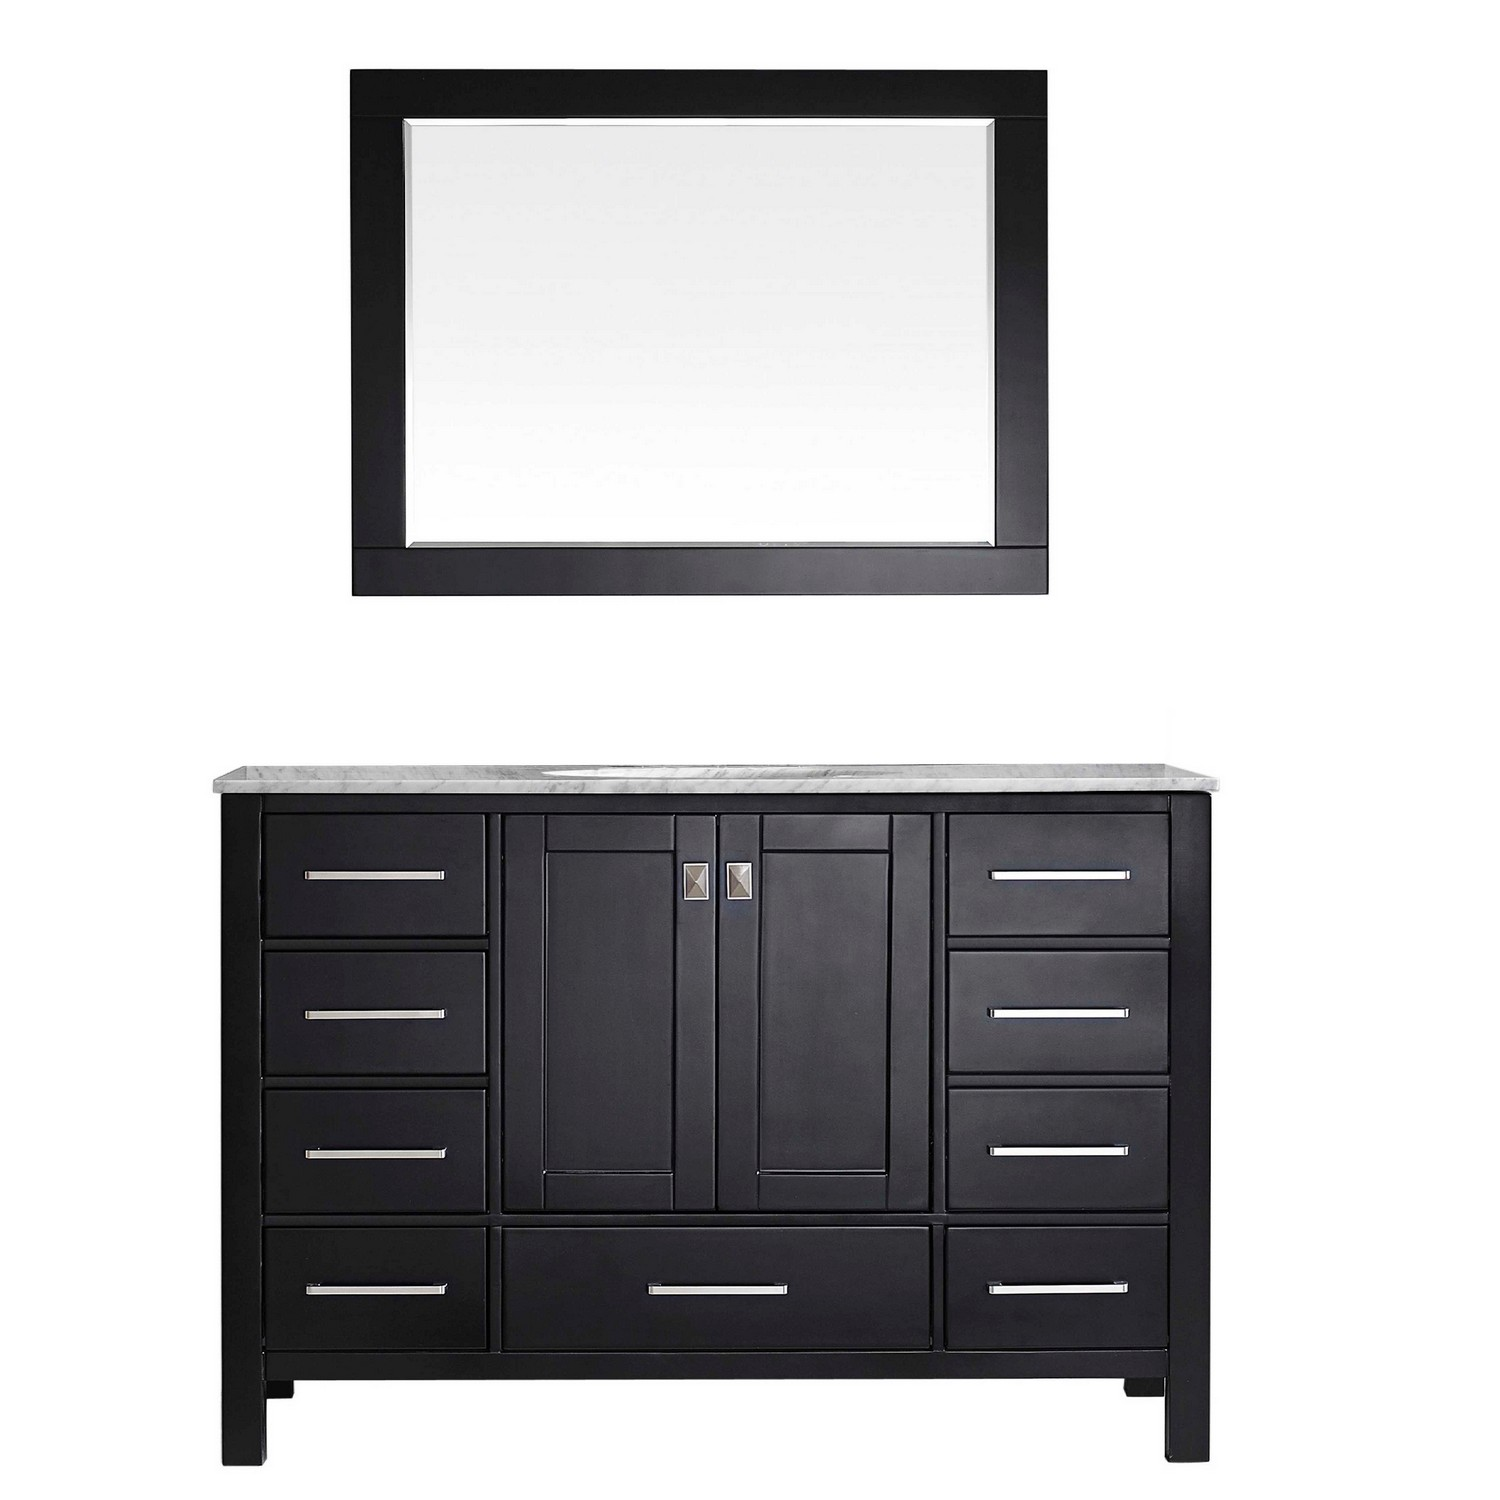 """EVVN412 60ES SS A Main - Eviva Aberdeen 60"""" Transitional Espresso Single Bathroom Vanity with White Carrera Countertop"""